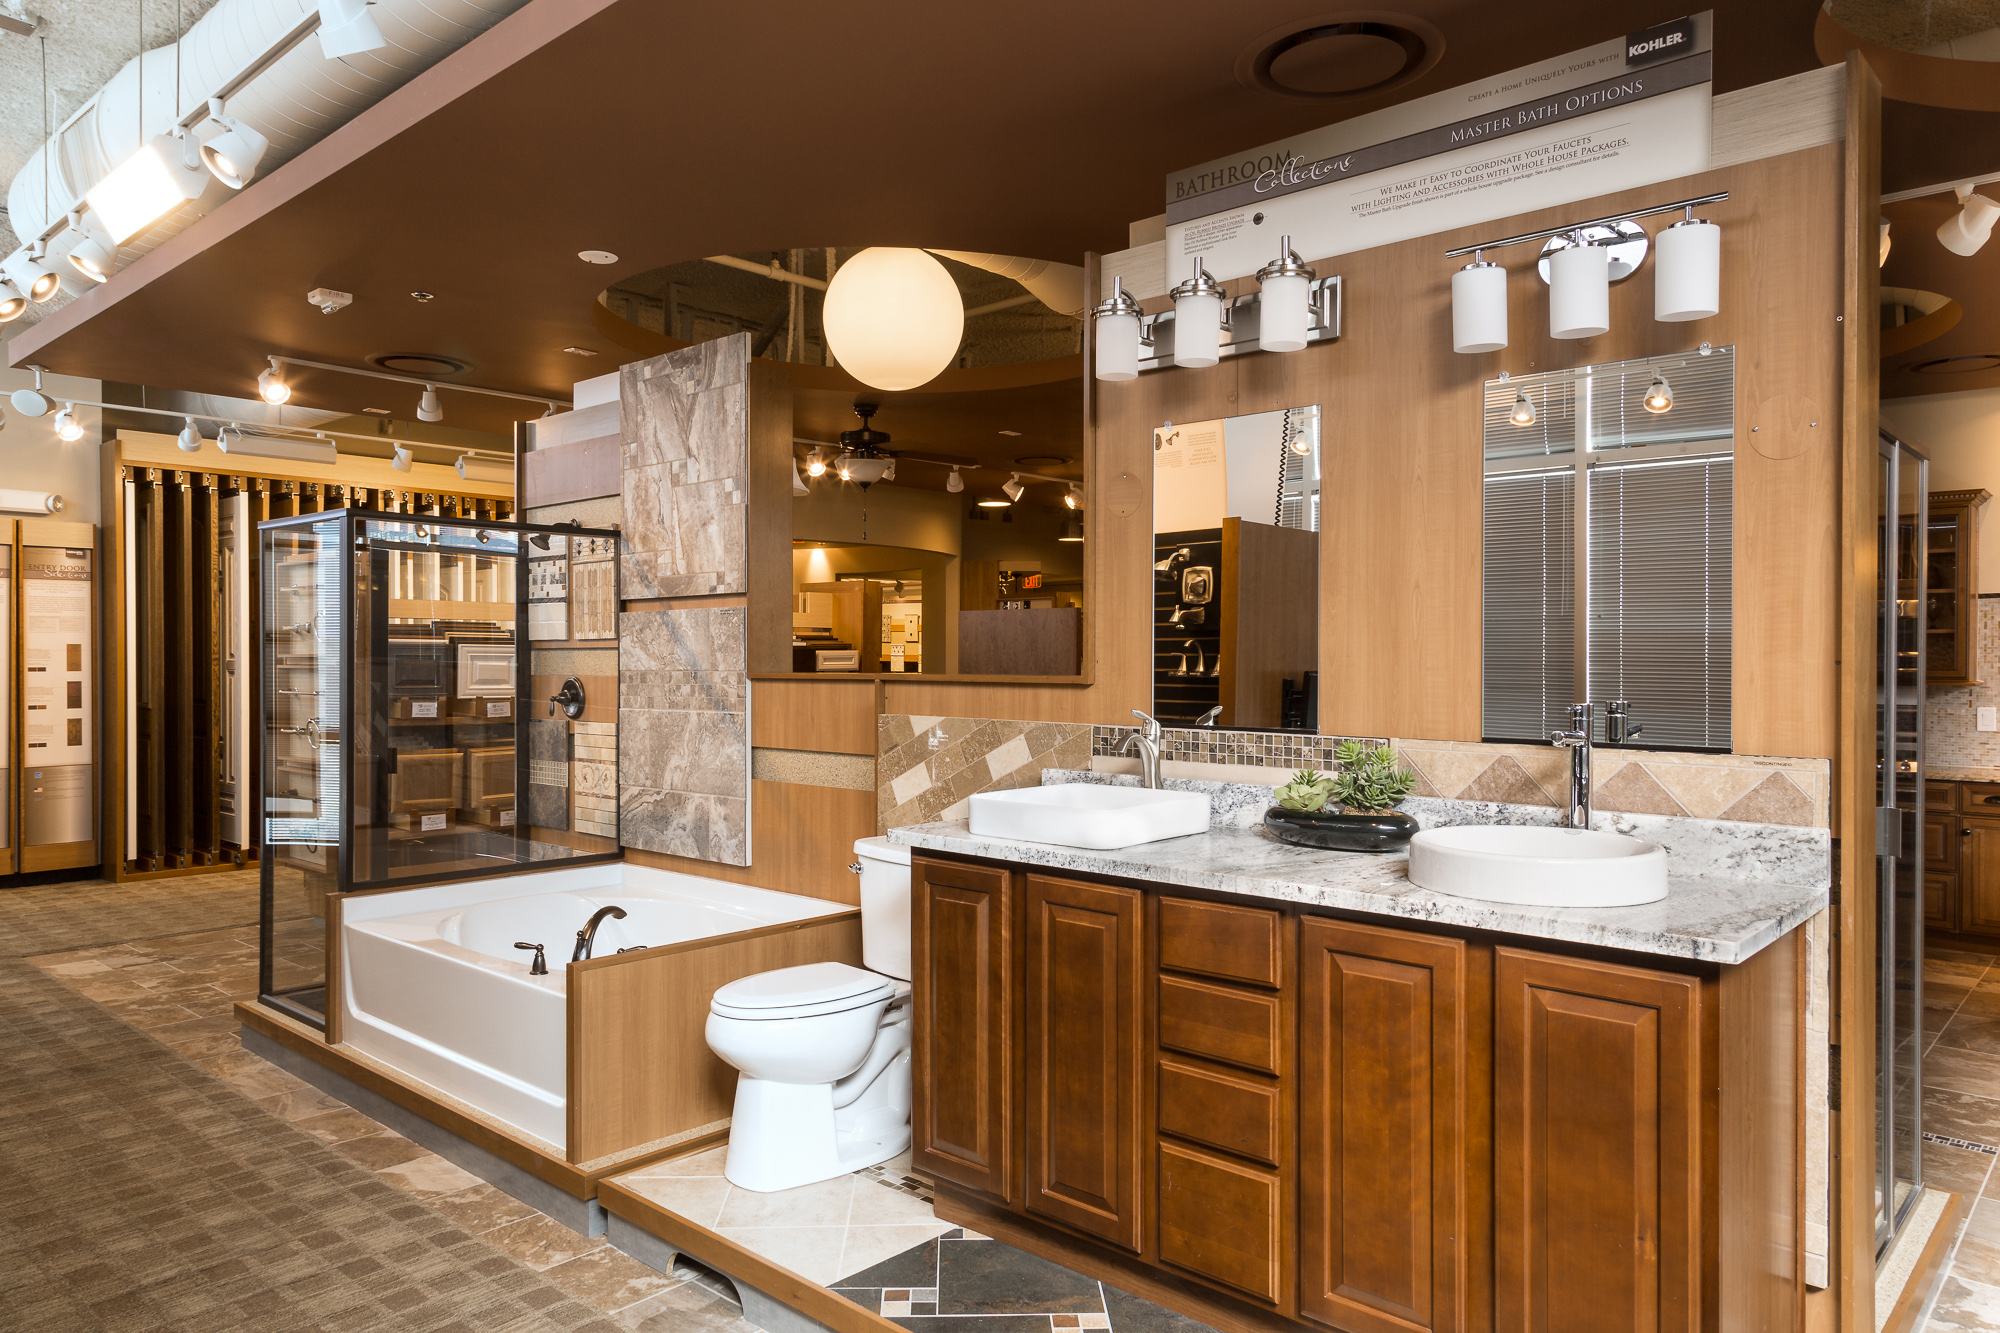 Pulte Home Expressions Studio Design Center, AZ - Interior ...